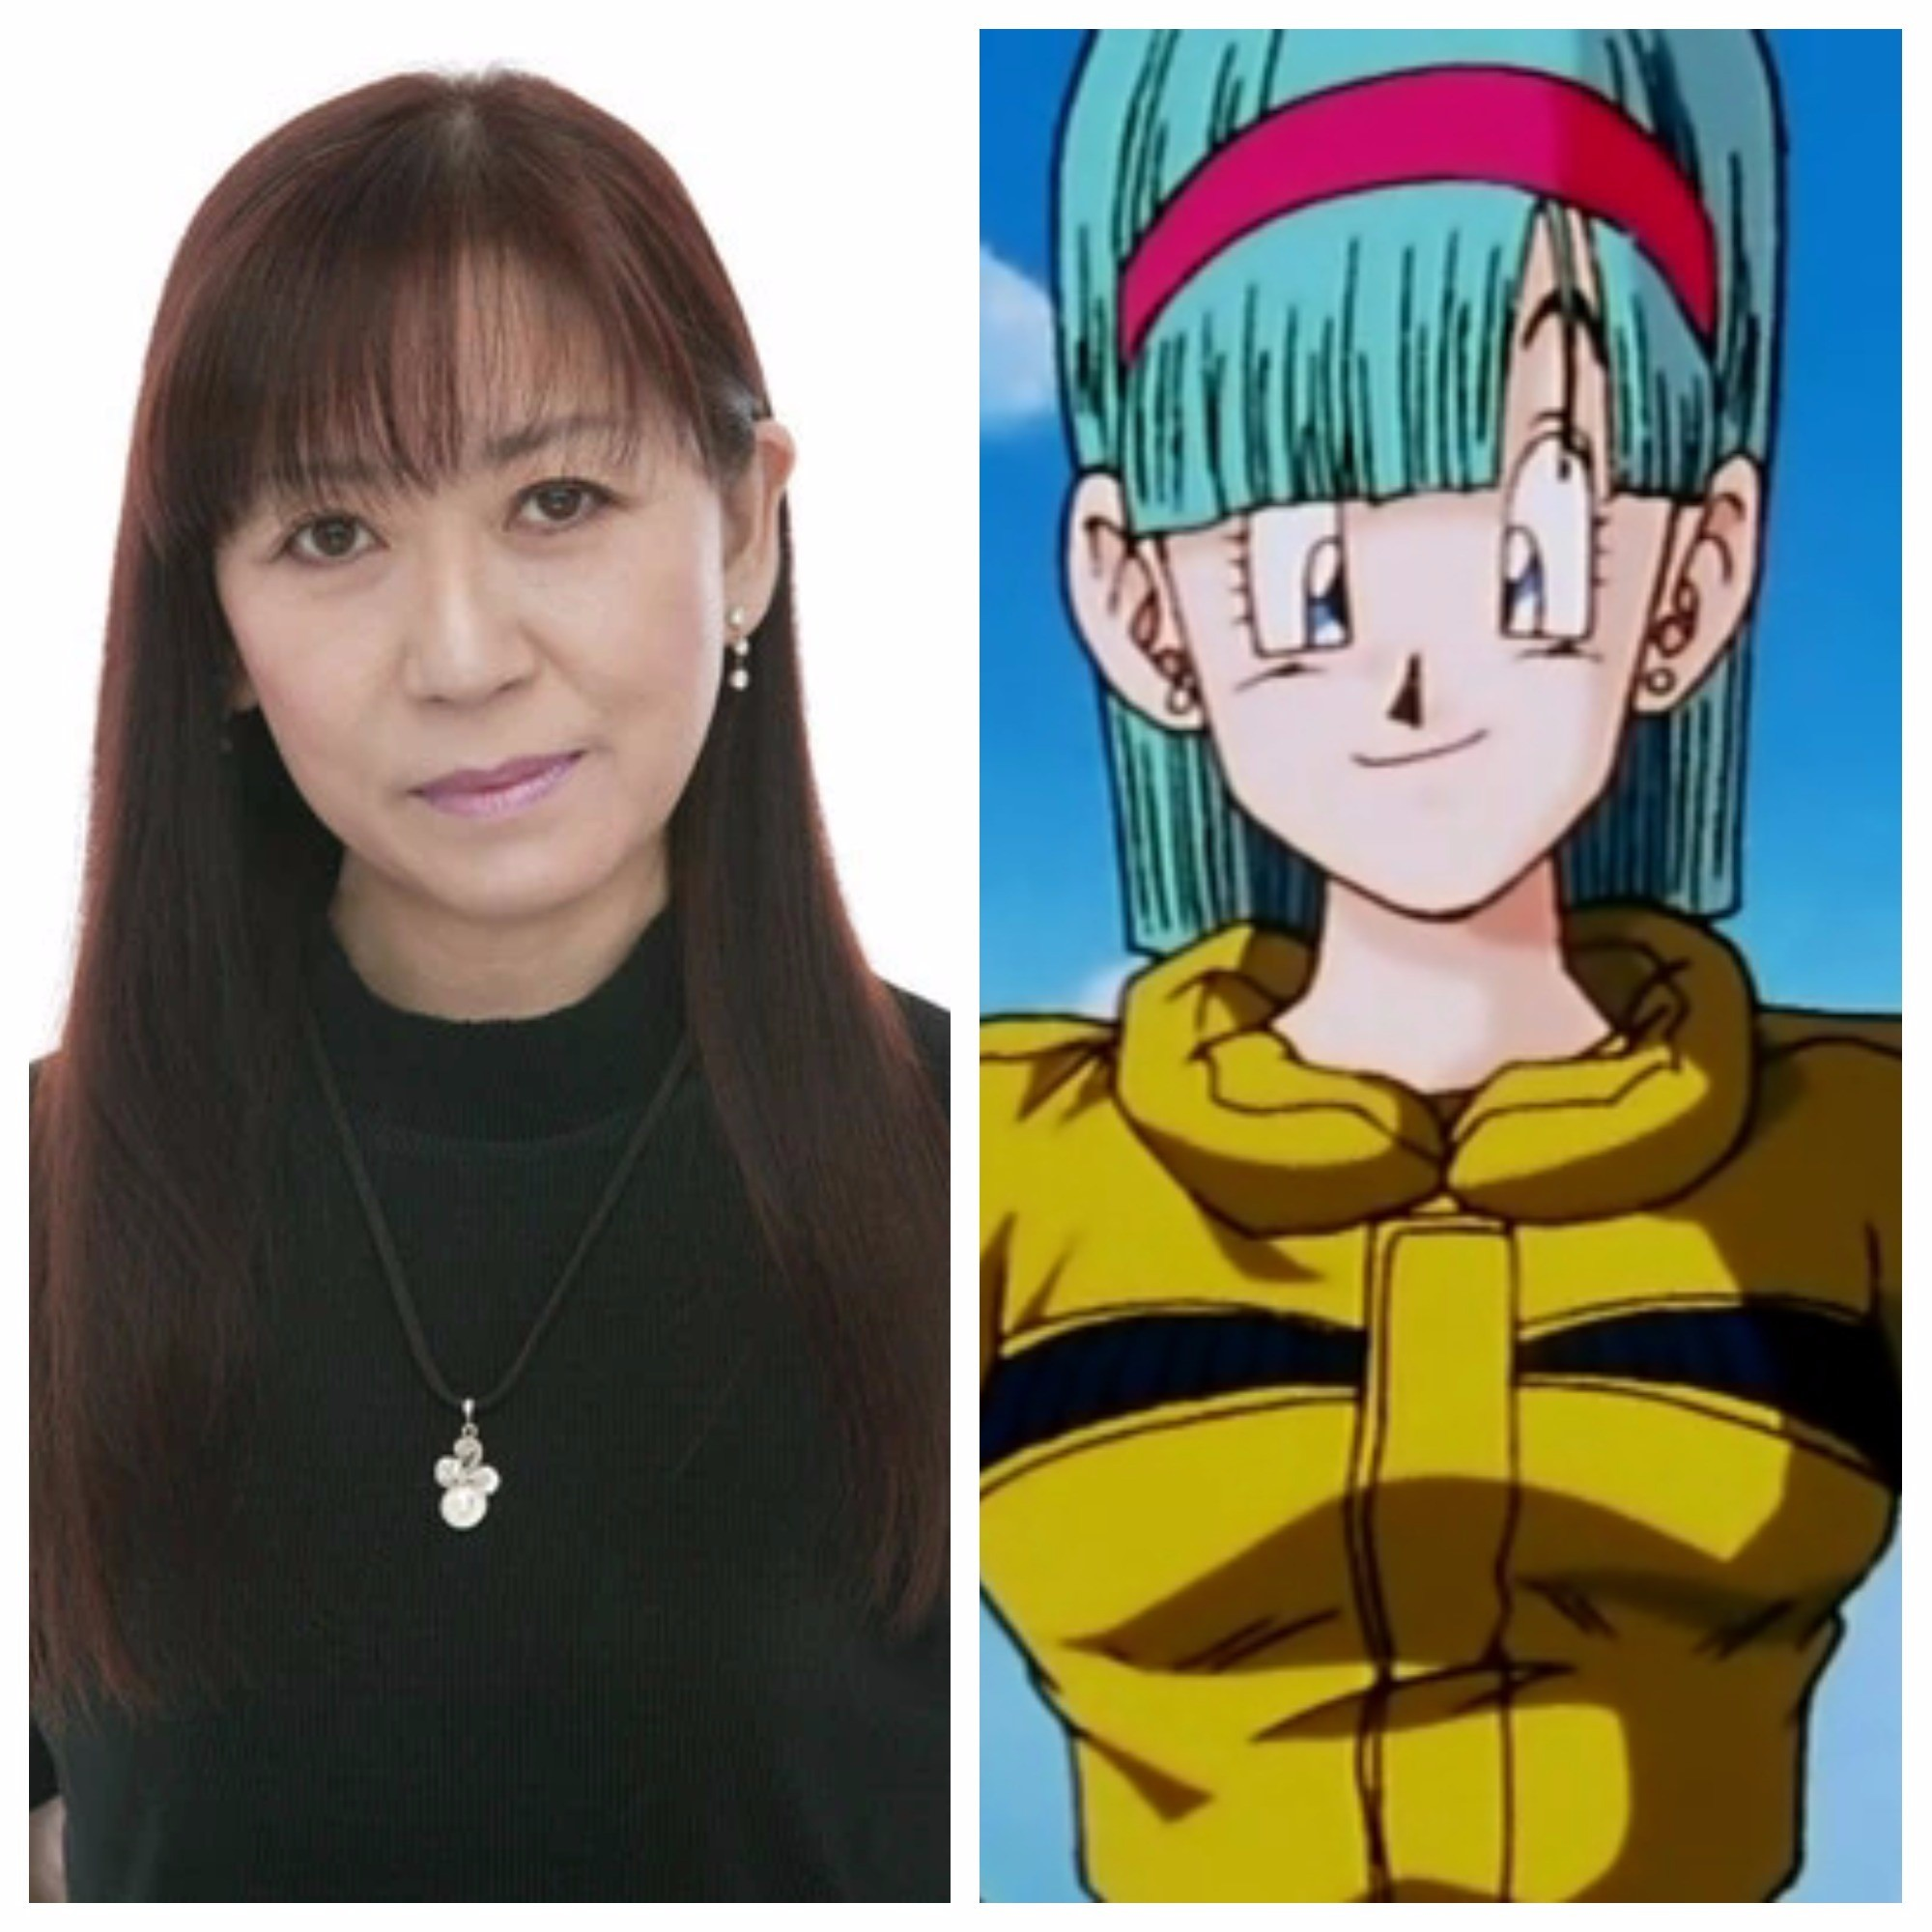 Her stint in Dragon Ball lasted for 31 years.